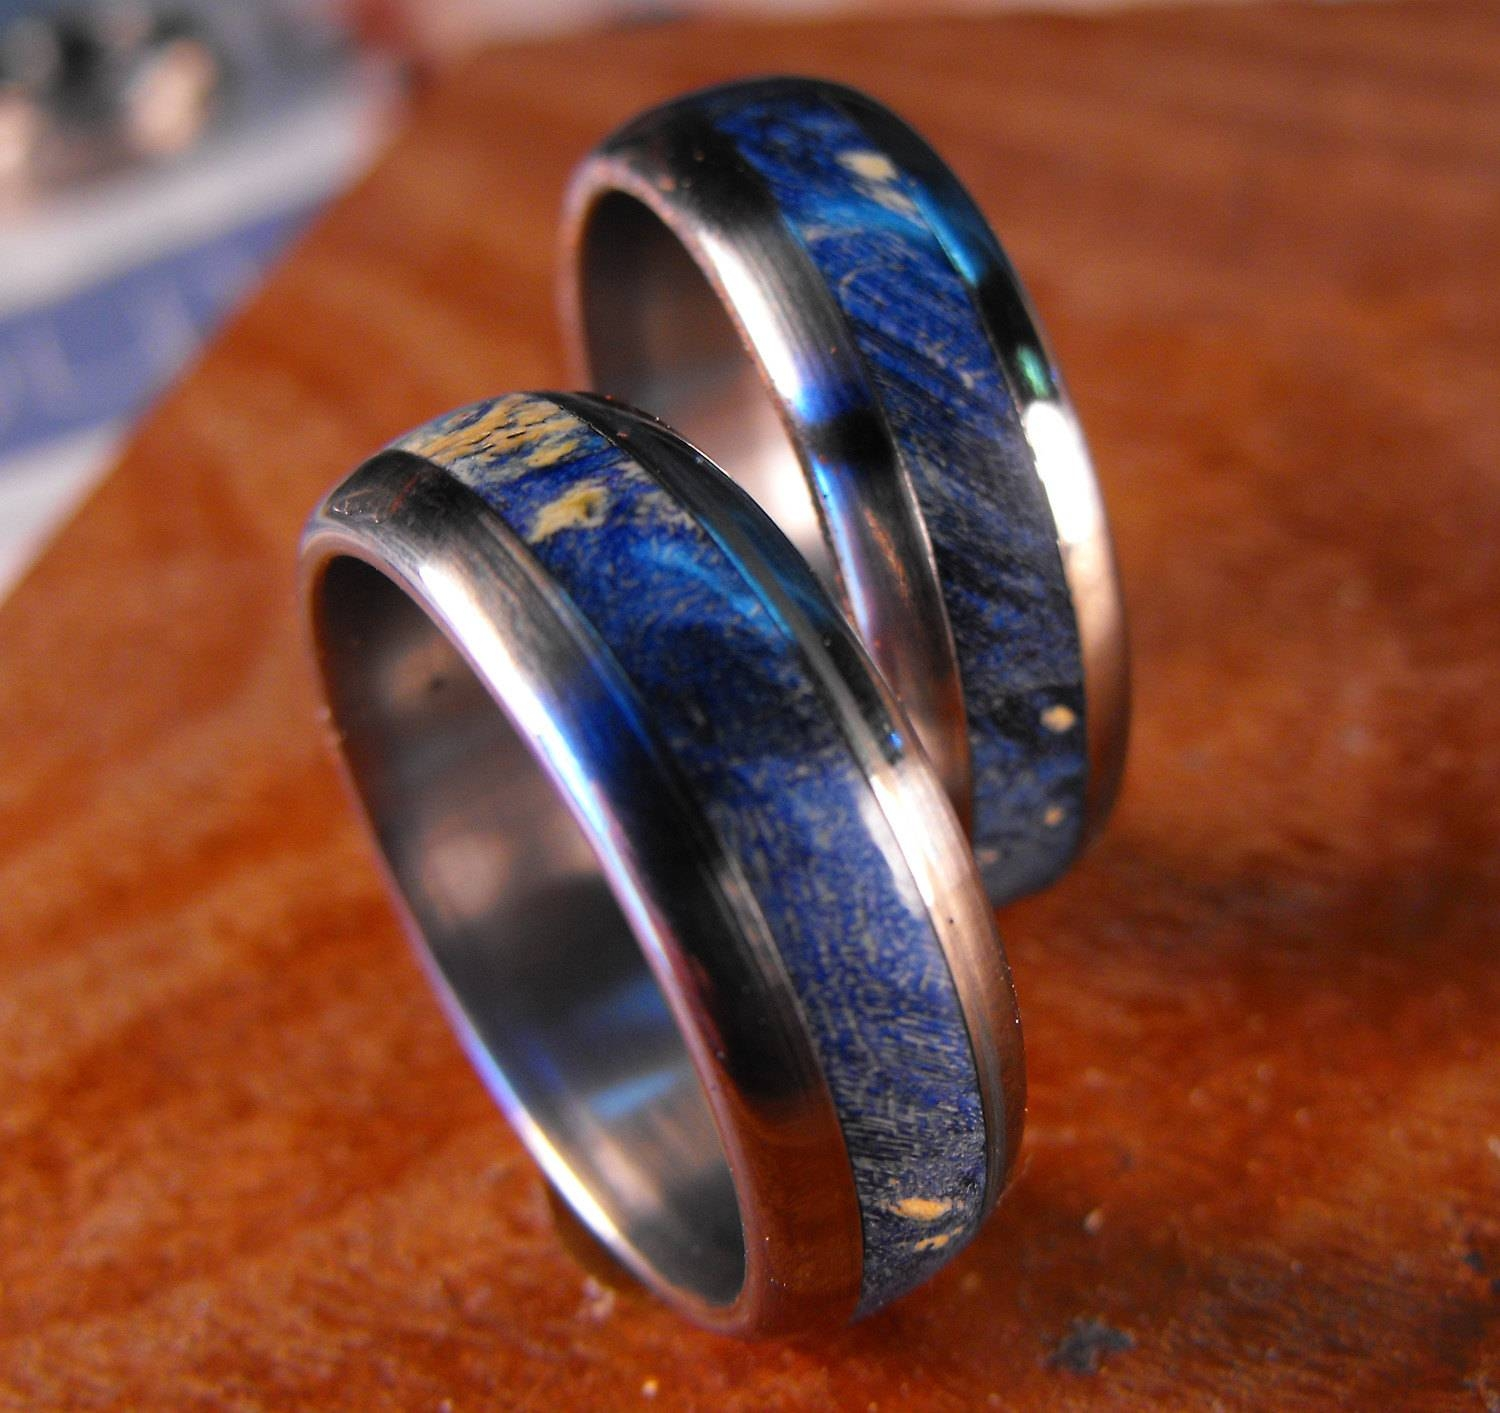 Titanium Rings Wedding Rings Wedding Ring Set His And Hers Pertaining To Wood Inlay Wedding Rings (Gallery 4 of 15)